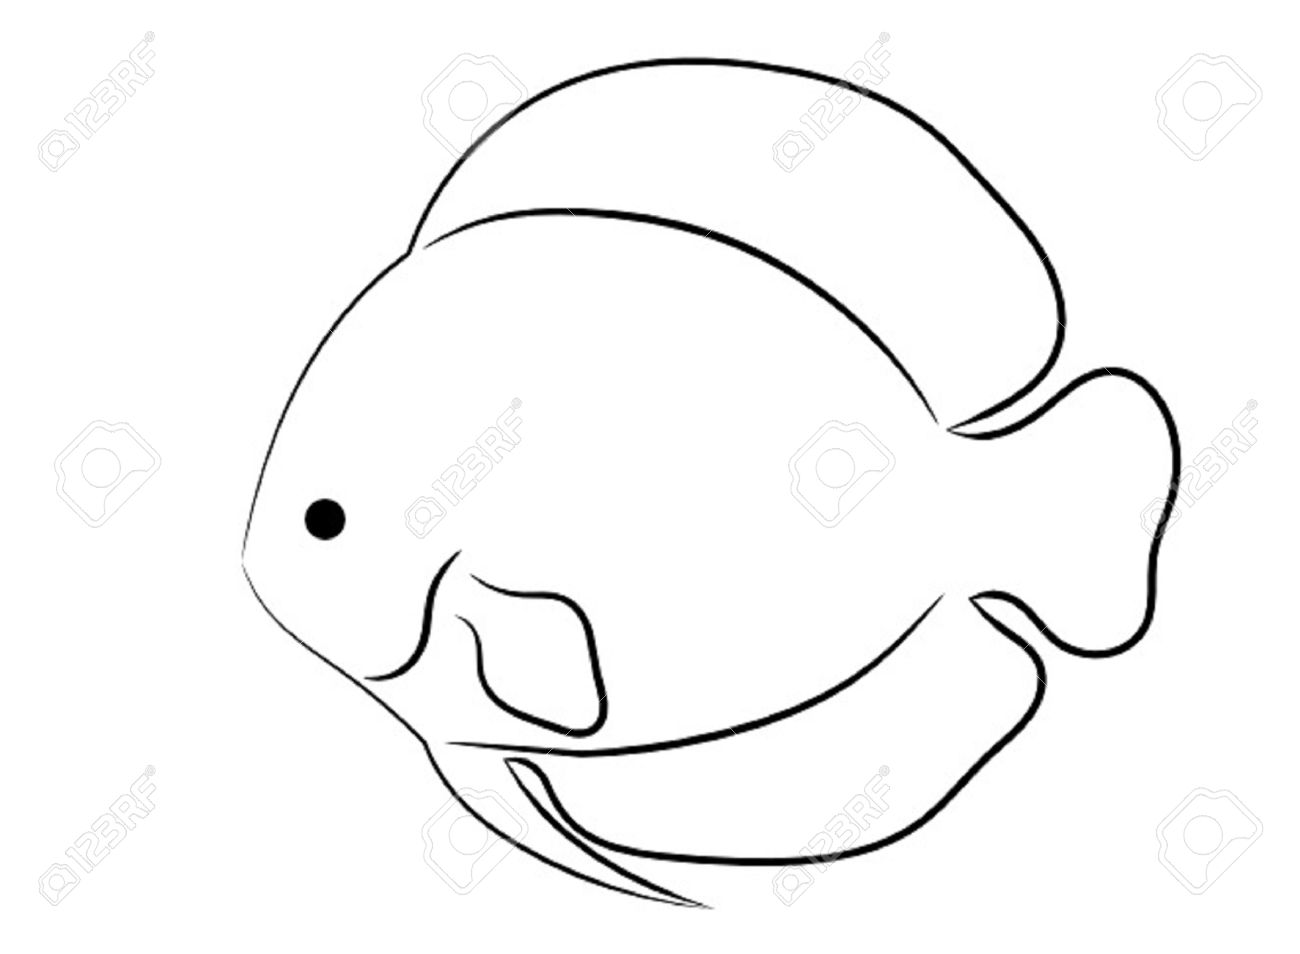 rounded tropical fish simple outline isolated on white background